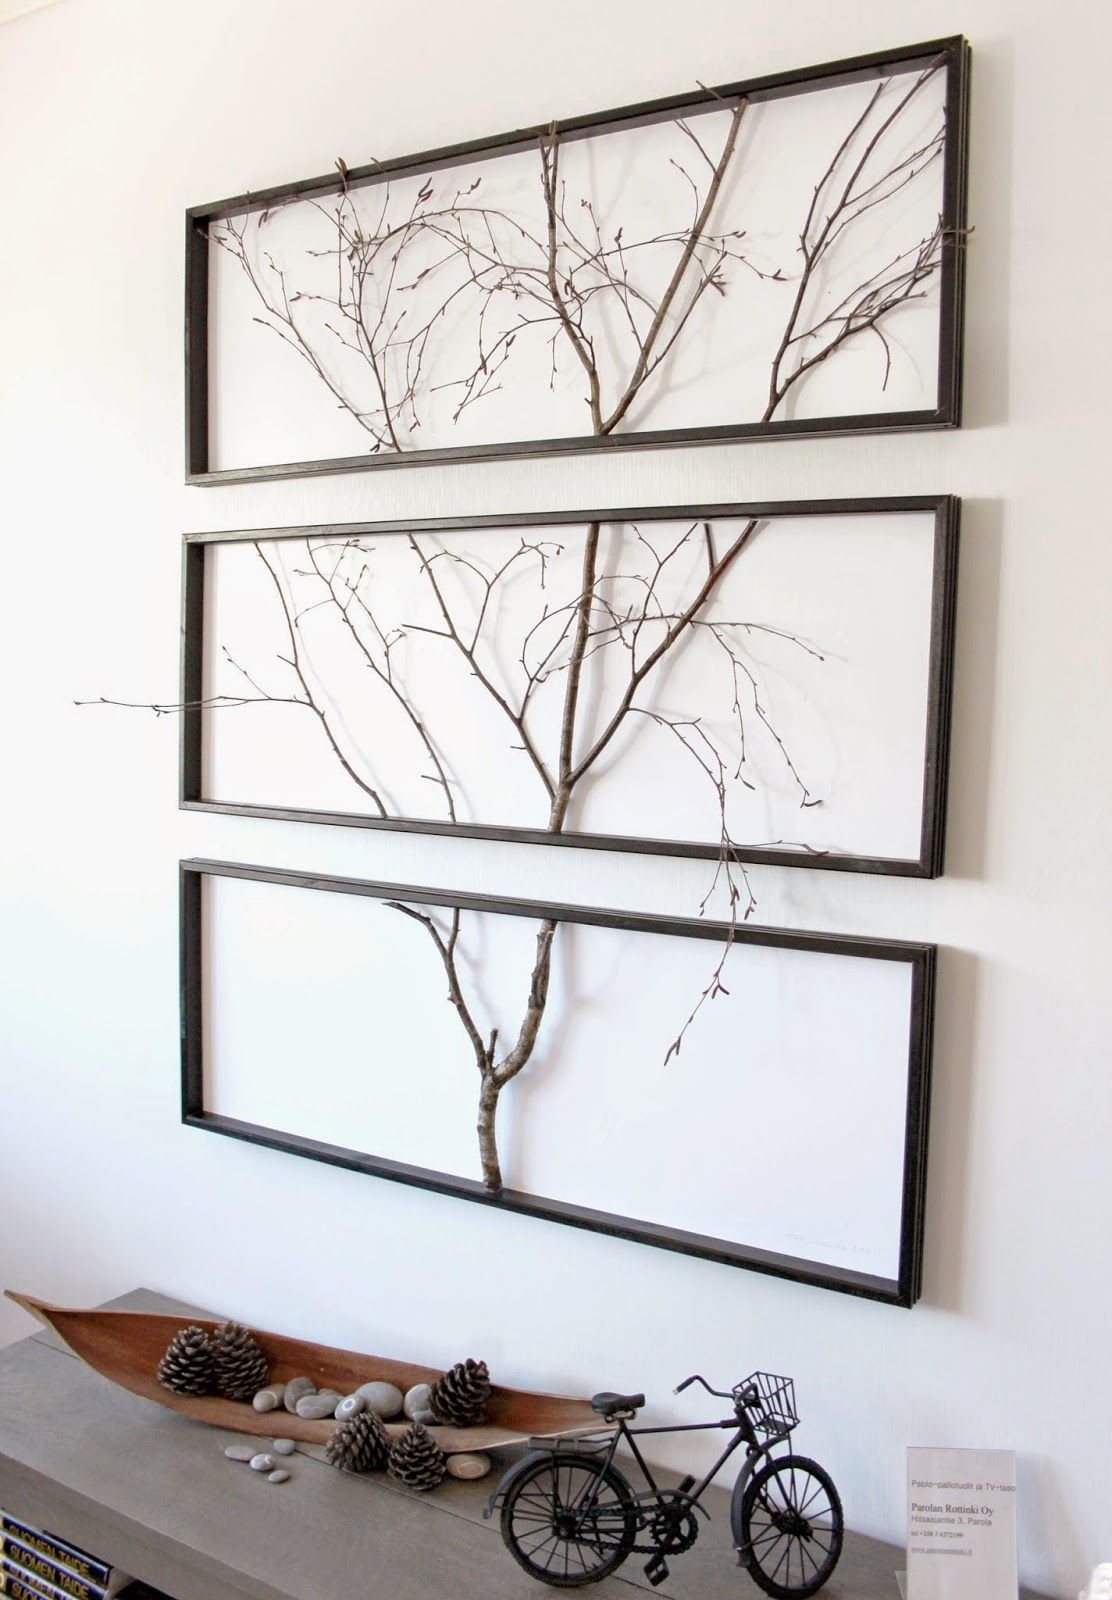 Pin by vedrana sember on decorating in pinterest woods